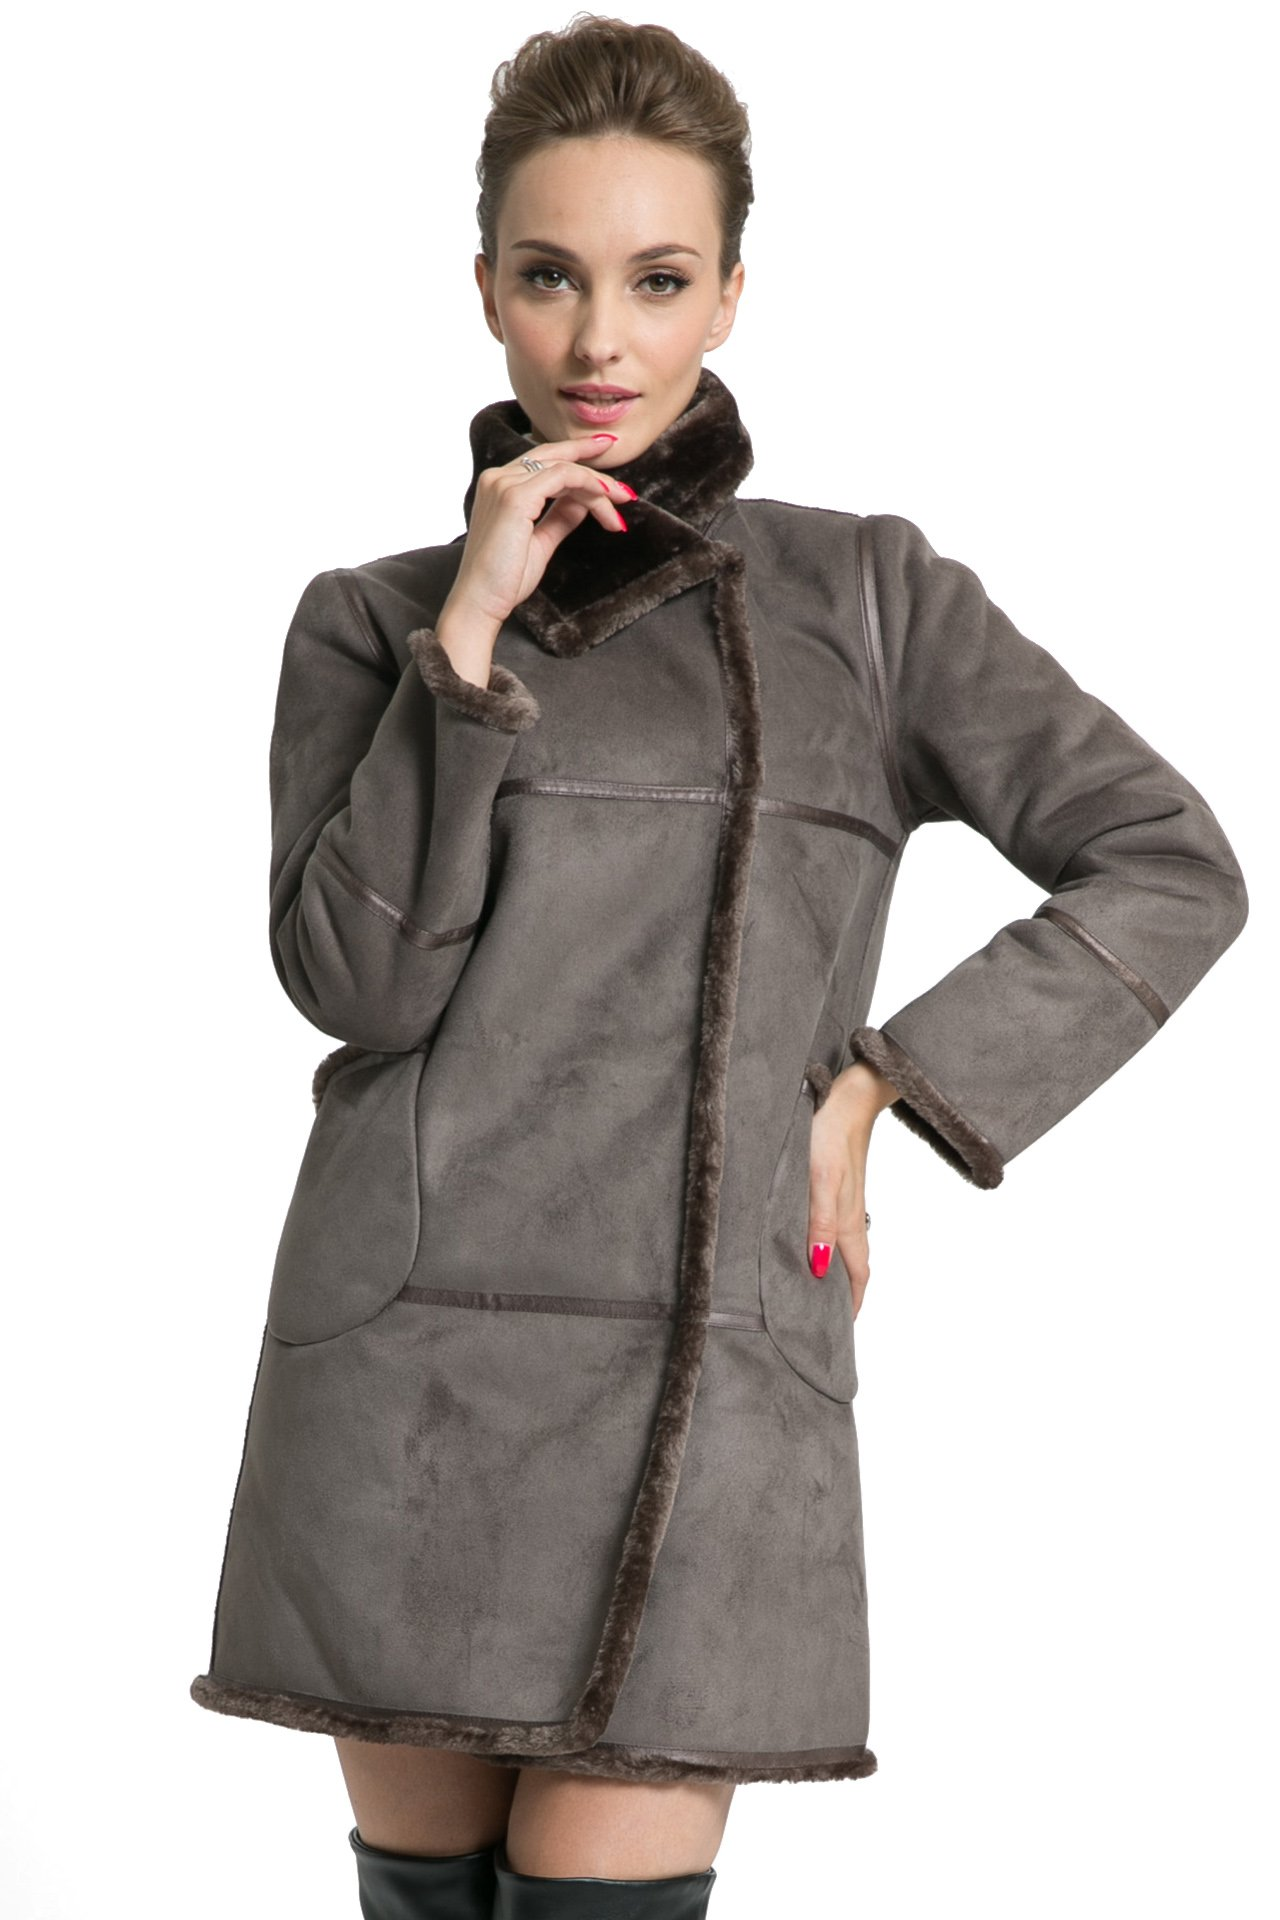 Ovonzo Women's Winter Style Soft Faux Suede Leather Pea Coat Hip Length Grey Size M by OVONZO